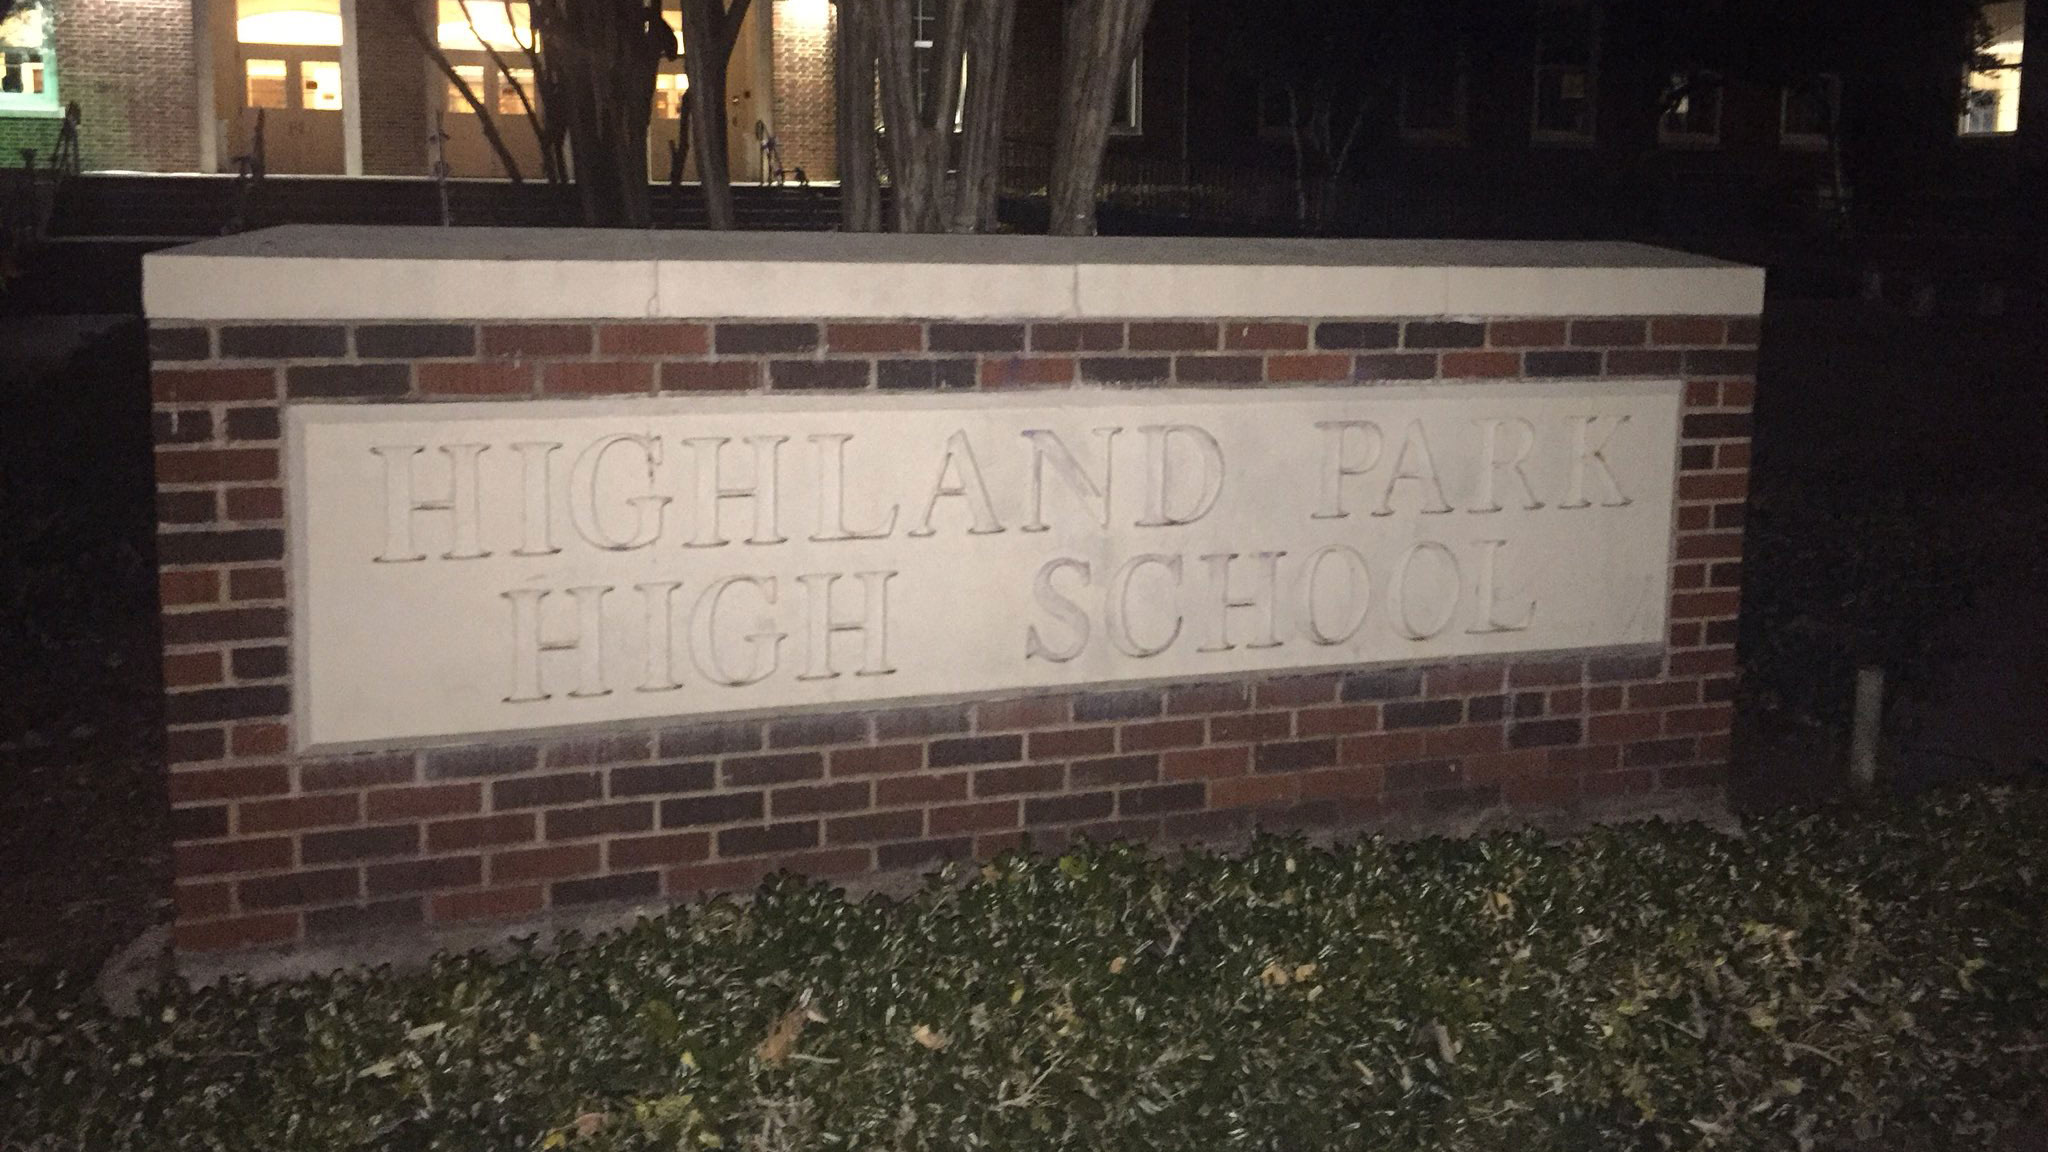 Highland Park High School Closed Due to No Heat